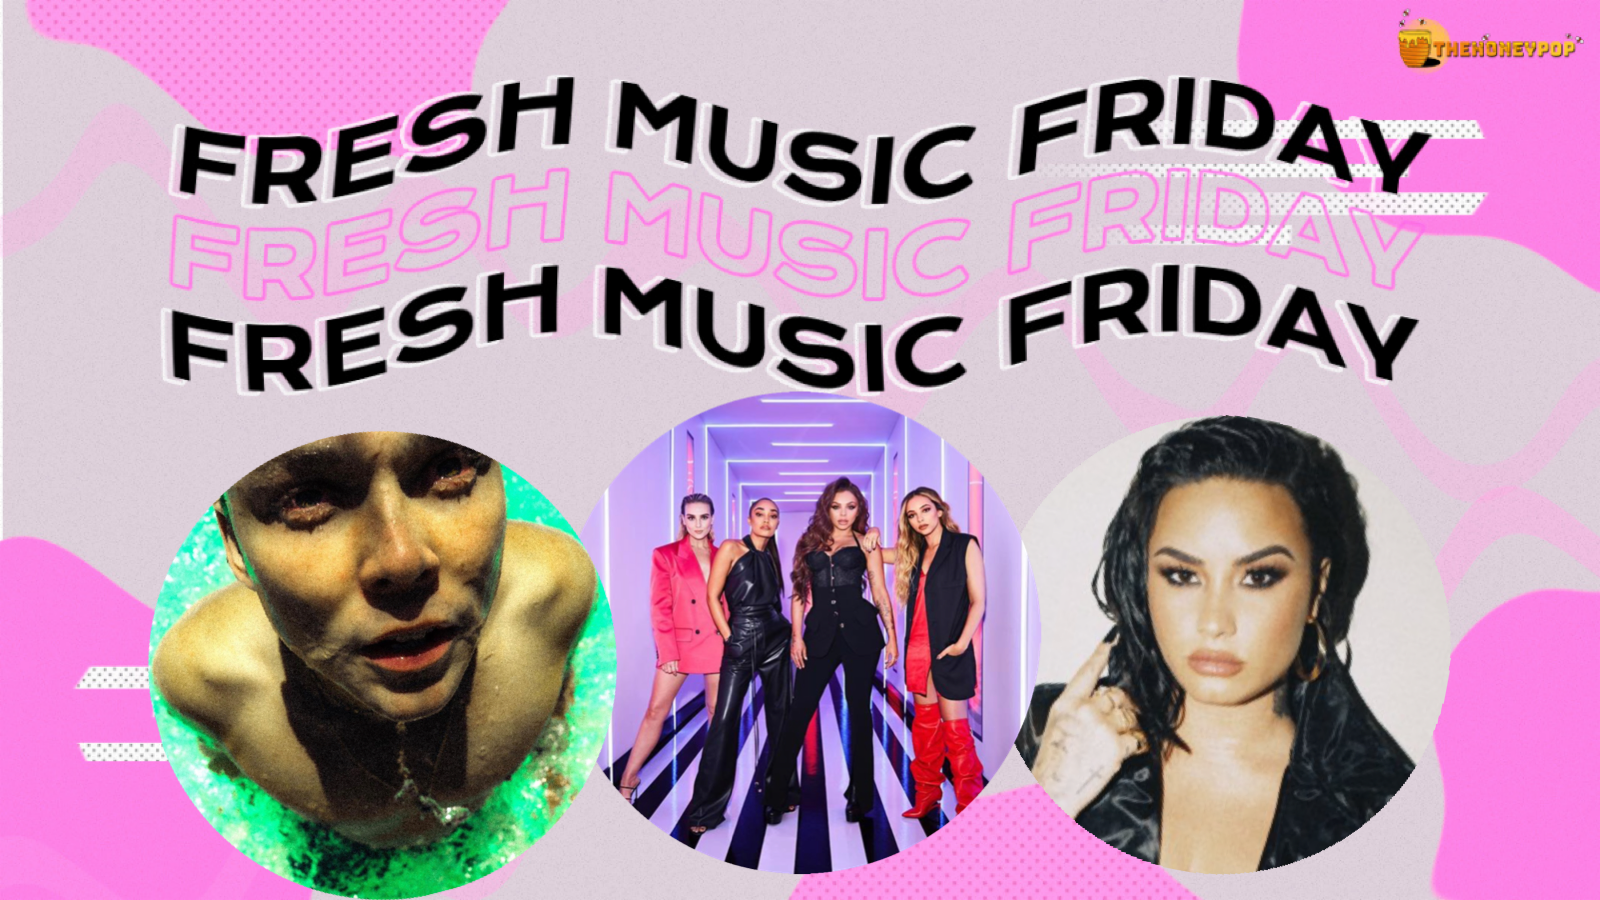 Fresh Music Friday: Ashton Irwin, Demi Lovato, Little Mix…and MORE!